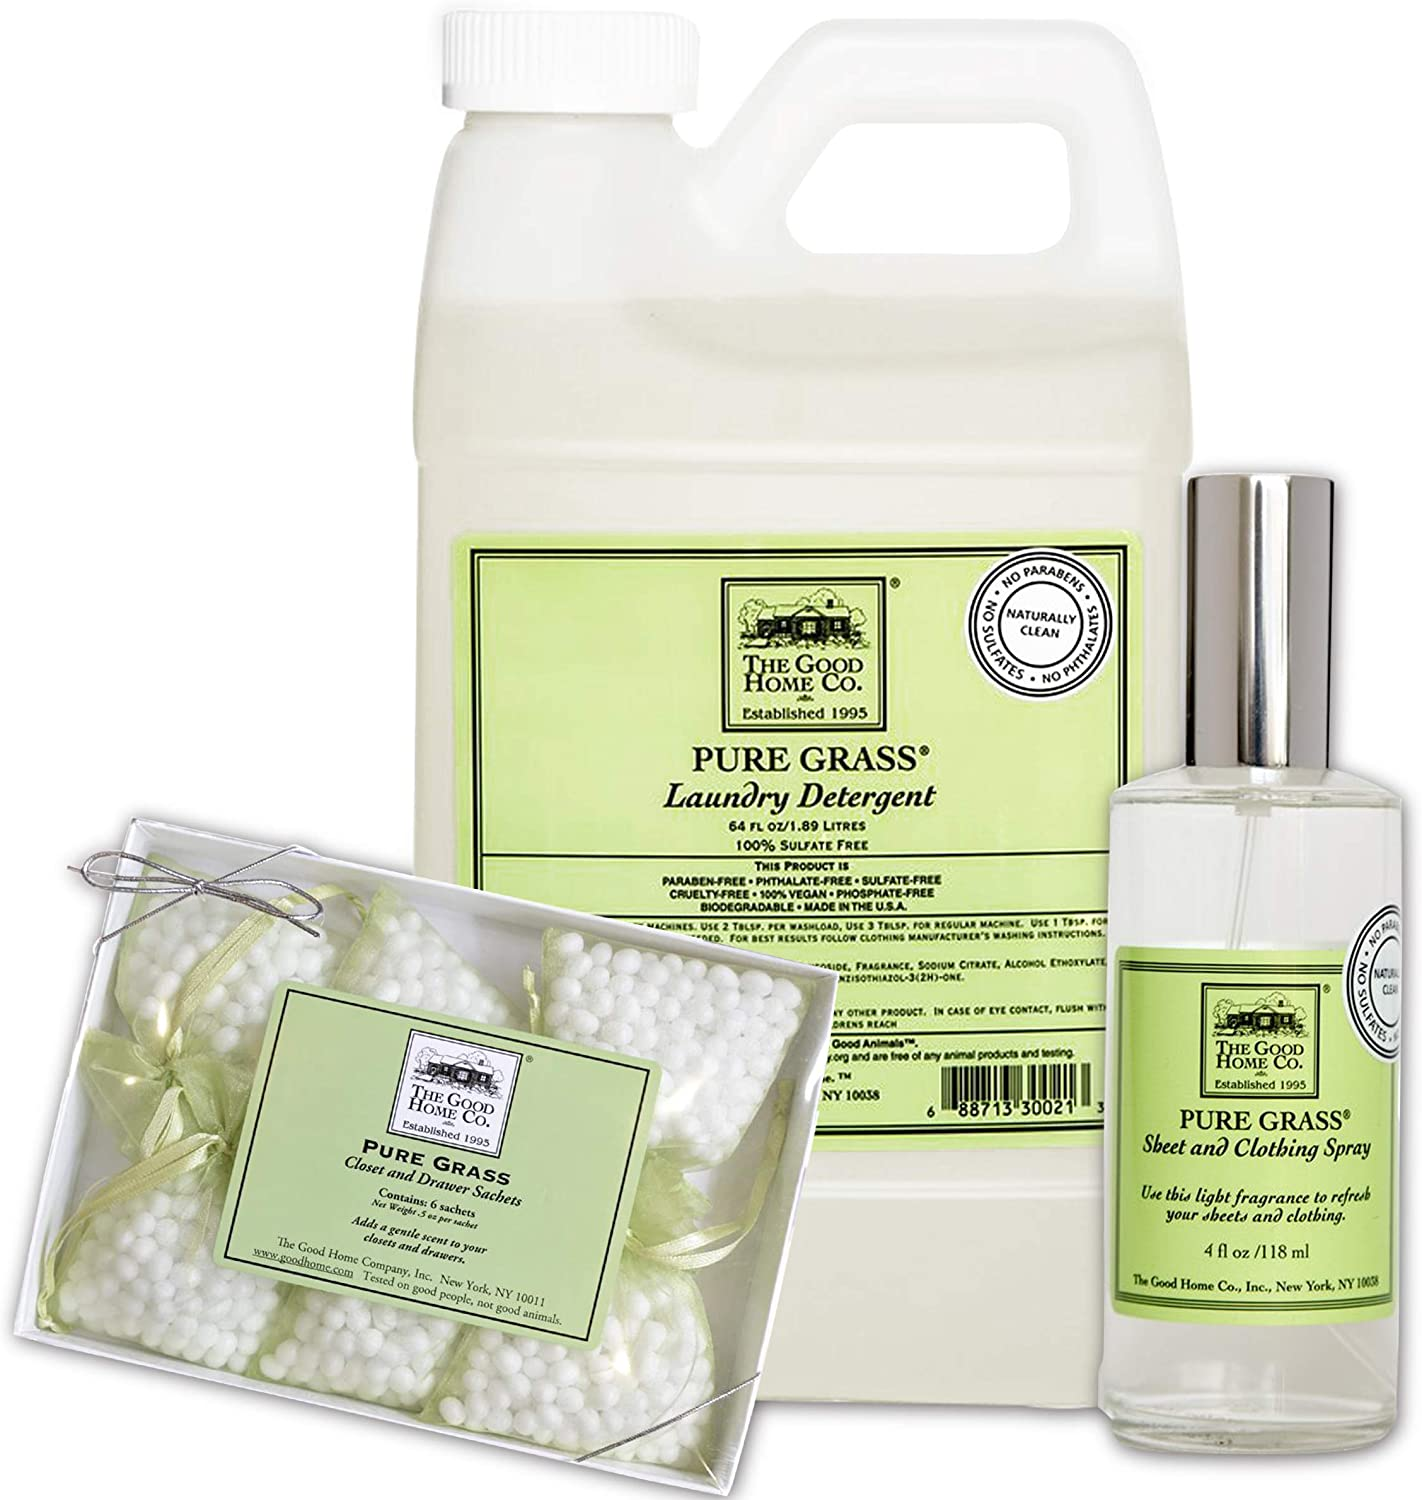 The Good Home Detergent 64 Oz, Sheet and Clothing Linen Spray 4 Oz, Closet and Drawers Sachets 0.5 Oz Pure Grass, Improves Sleep, Refreshes Clothes and Linen All-Natural Freshener